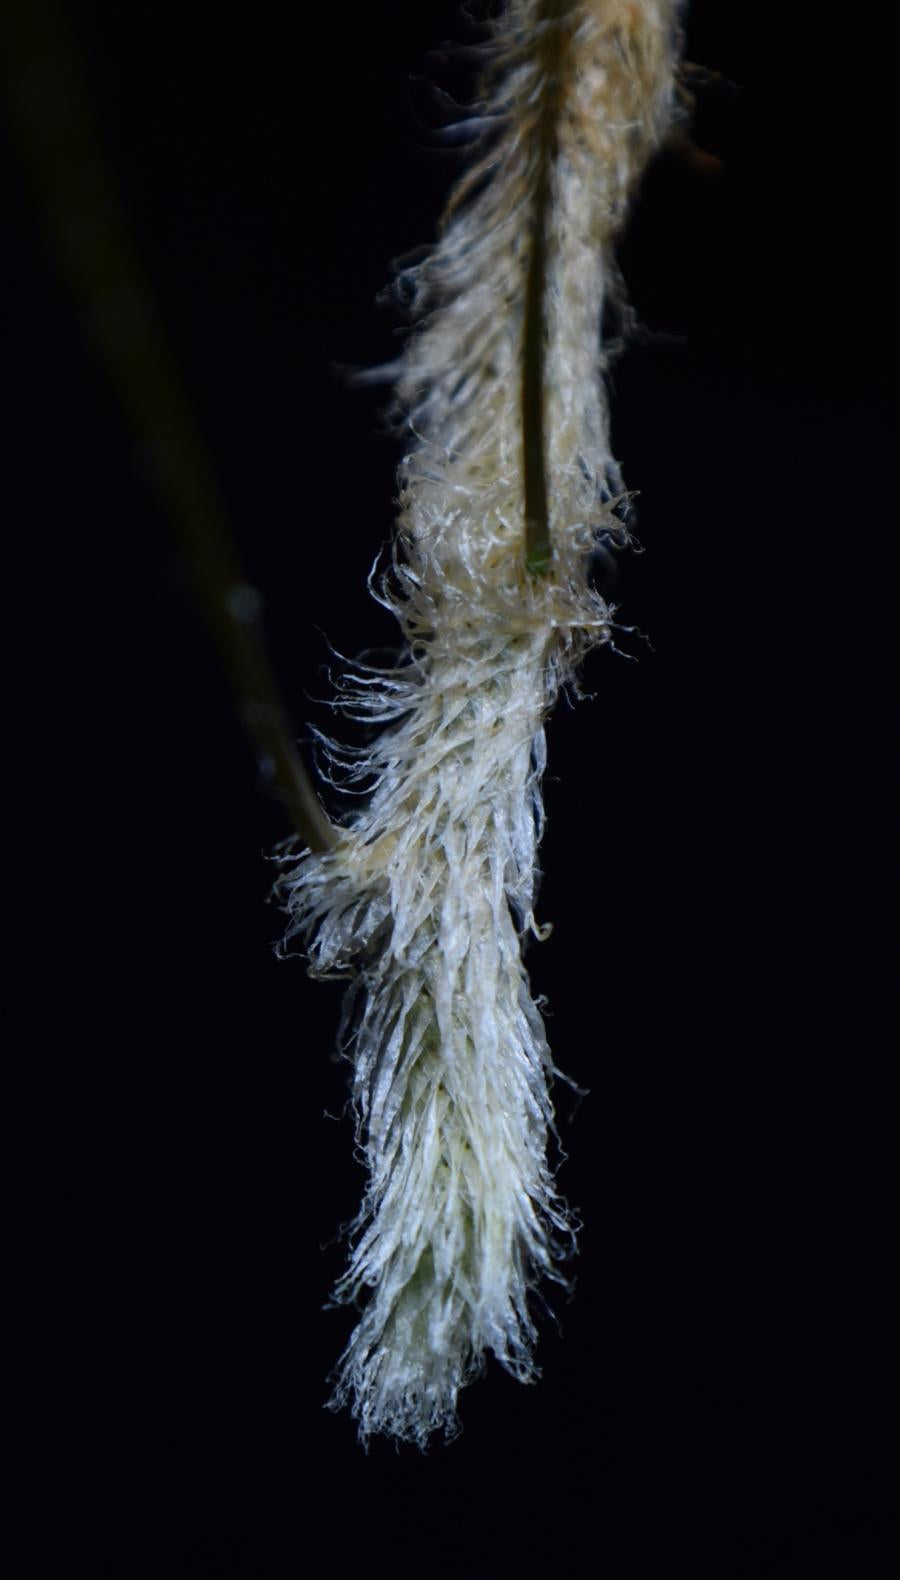 Close up of the hairs growing on Davallia tyermanii rhizome.